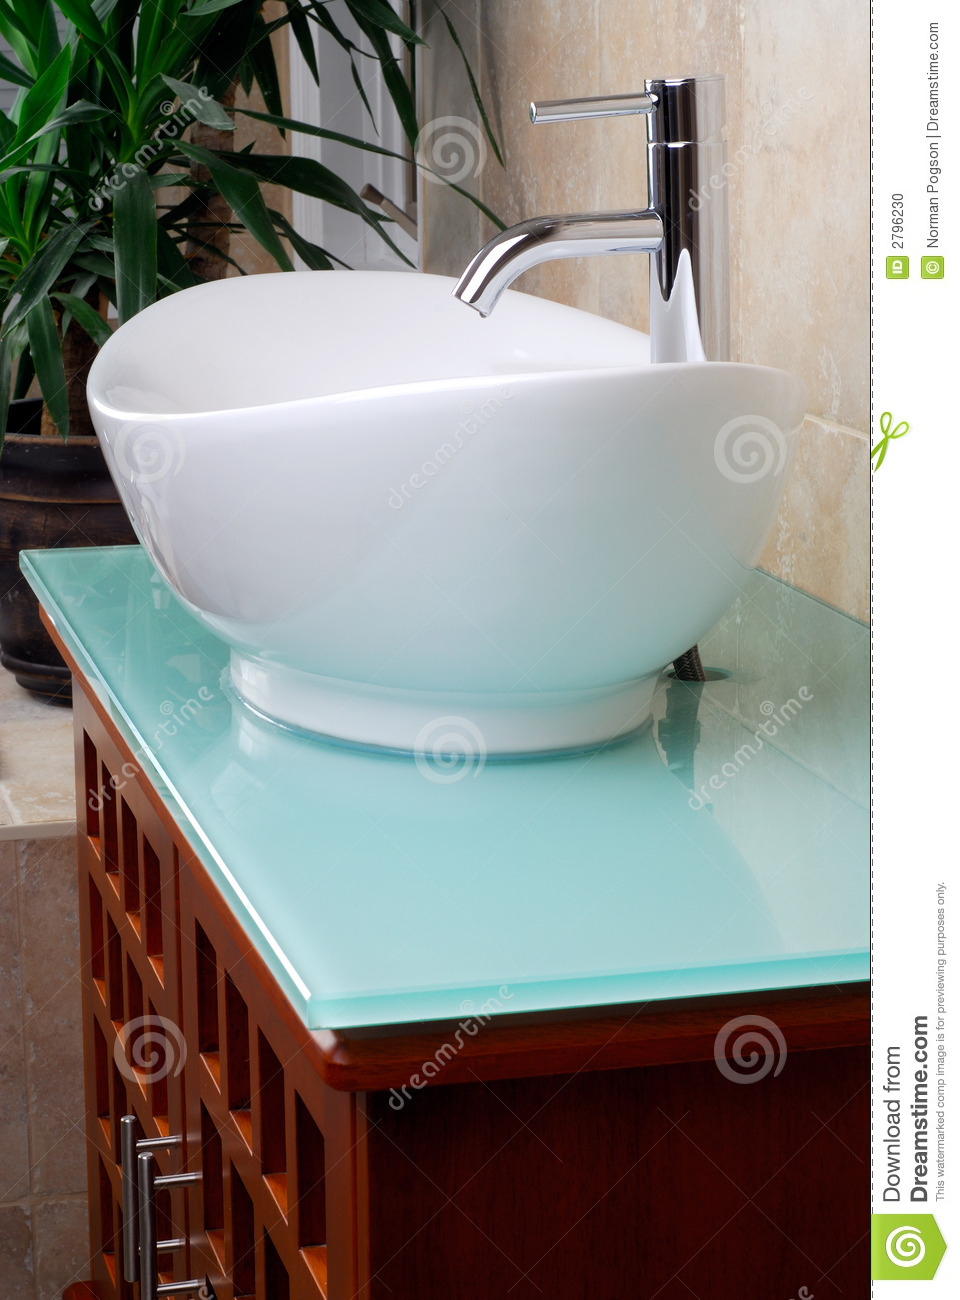 Image Result For Modern Contemporary Bathroom Sinks